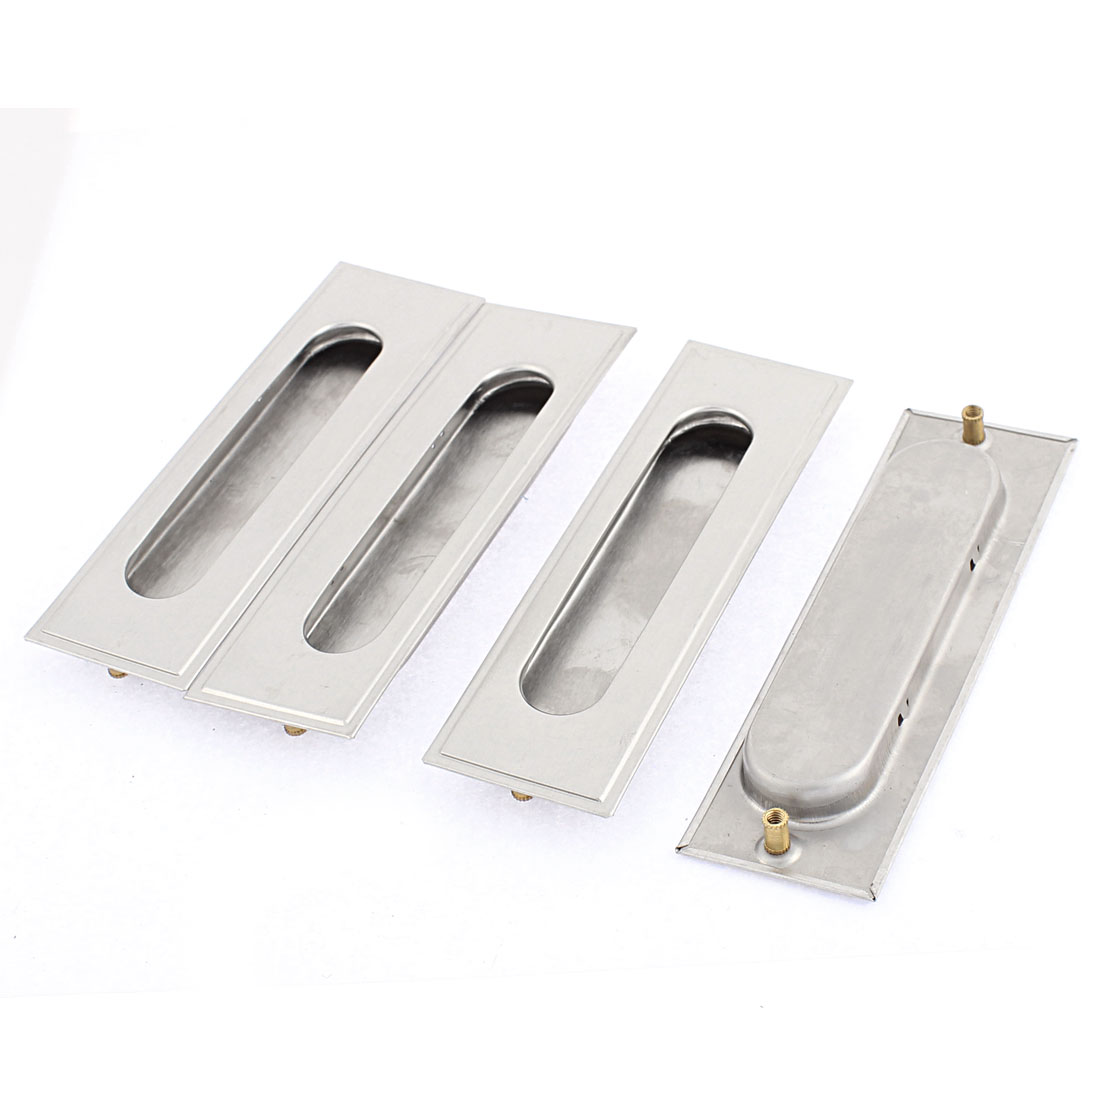 Sliding Door Stainless Steel Recessed Flush Pull Handle 4PCS